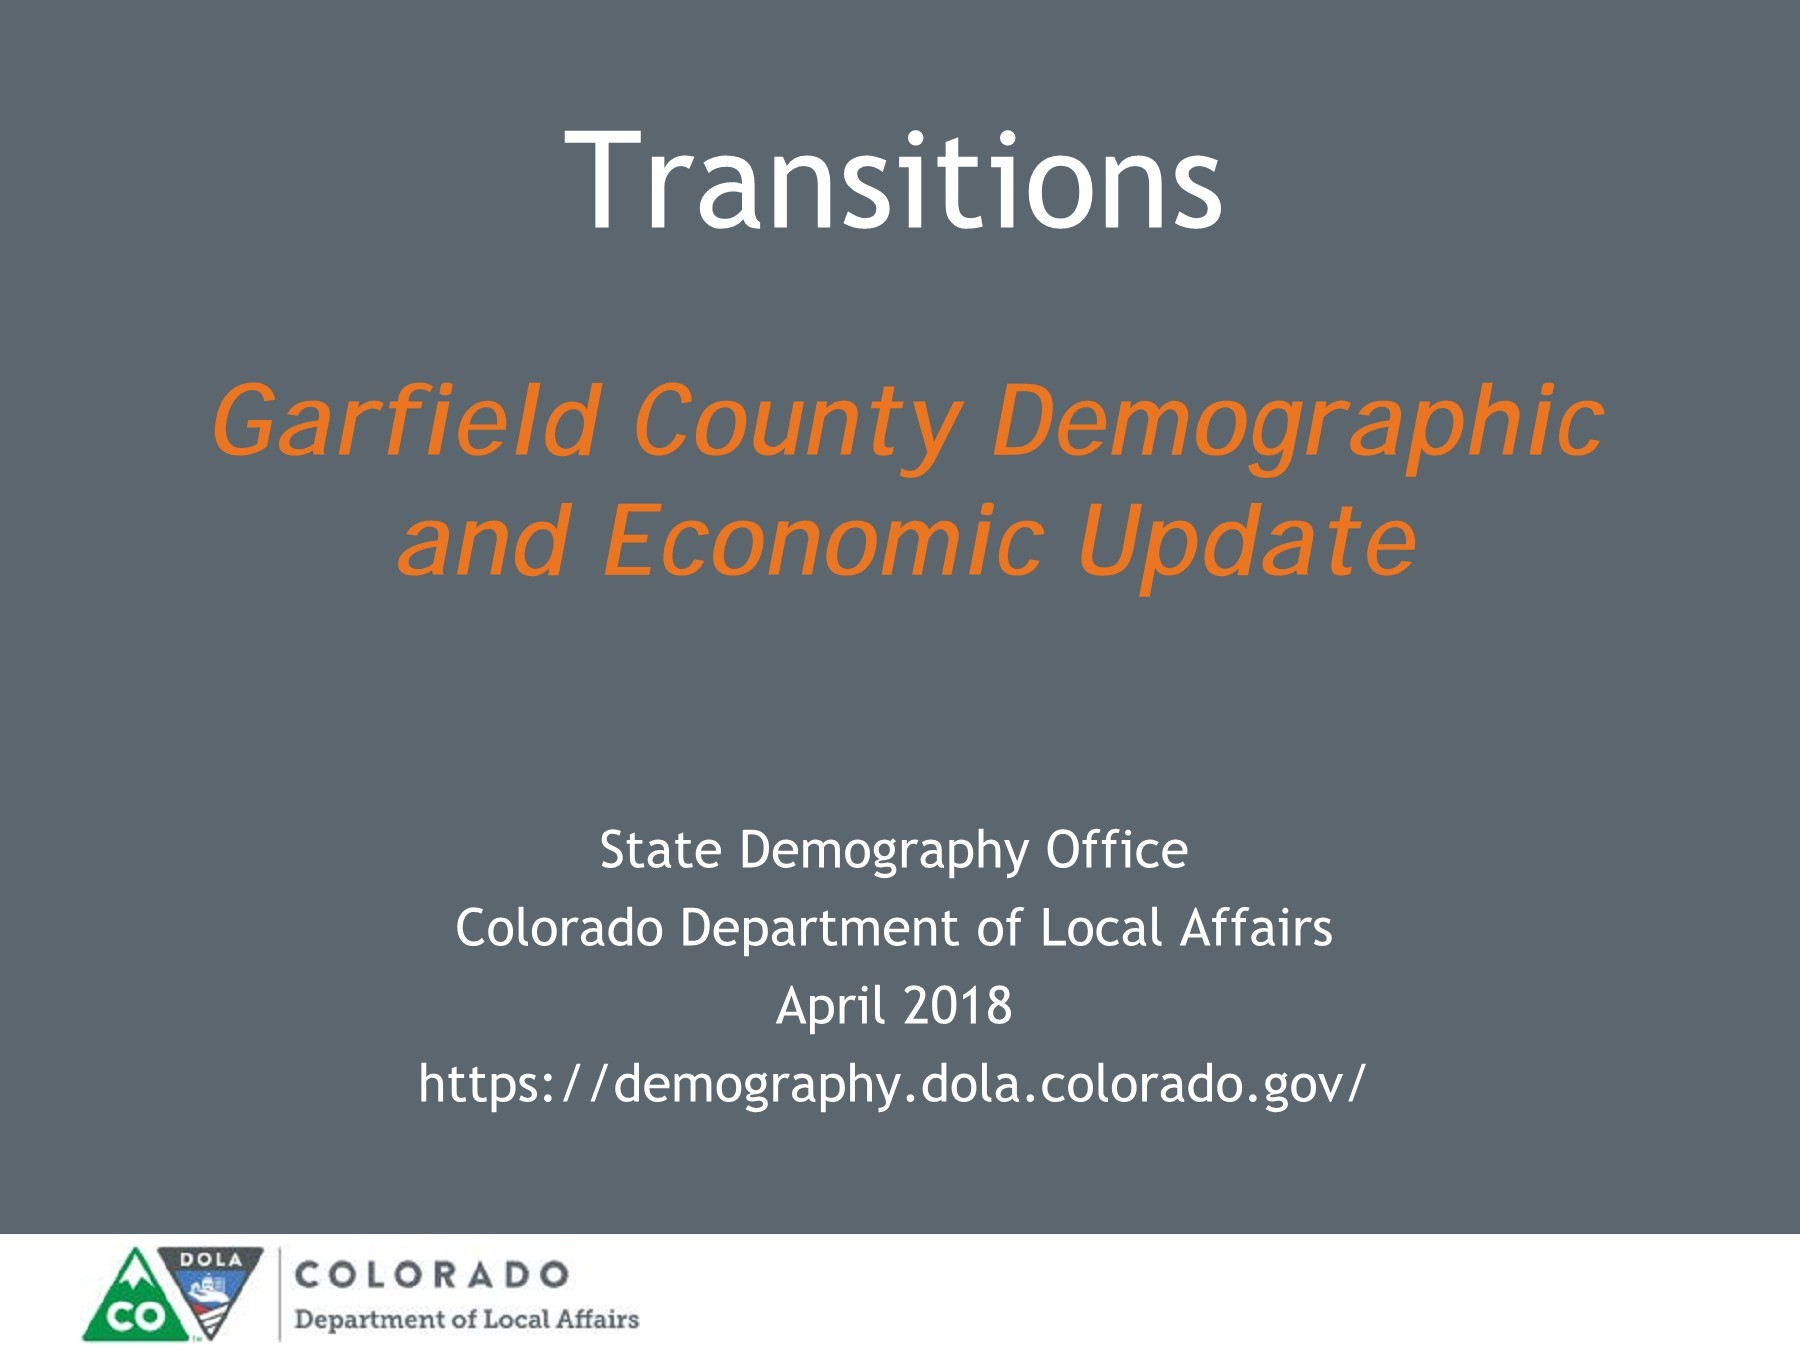 Garfield County demographics